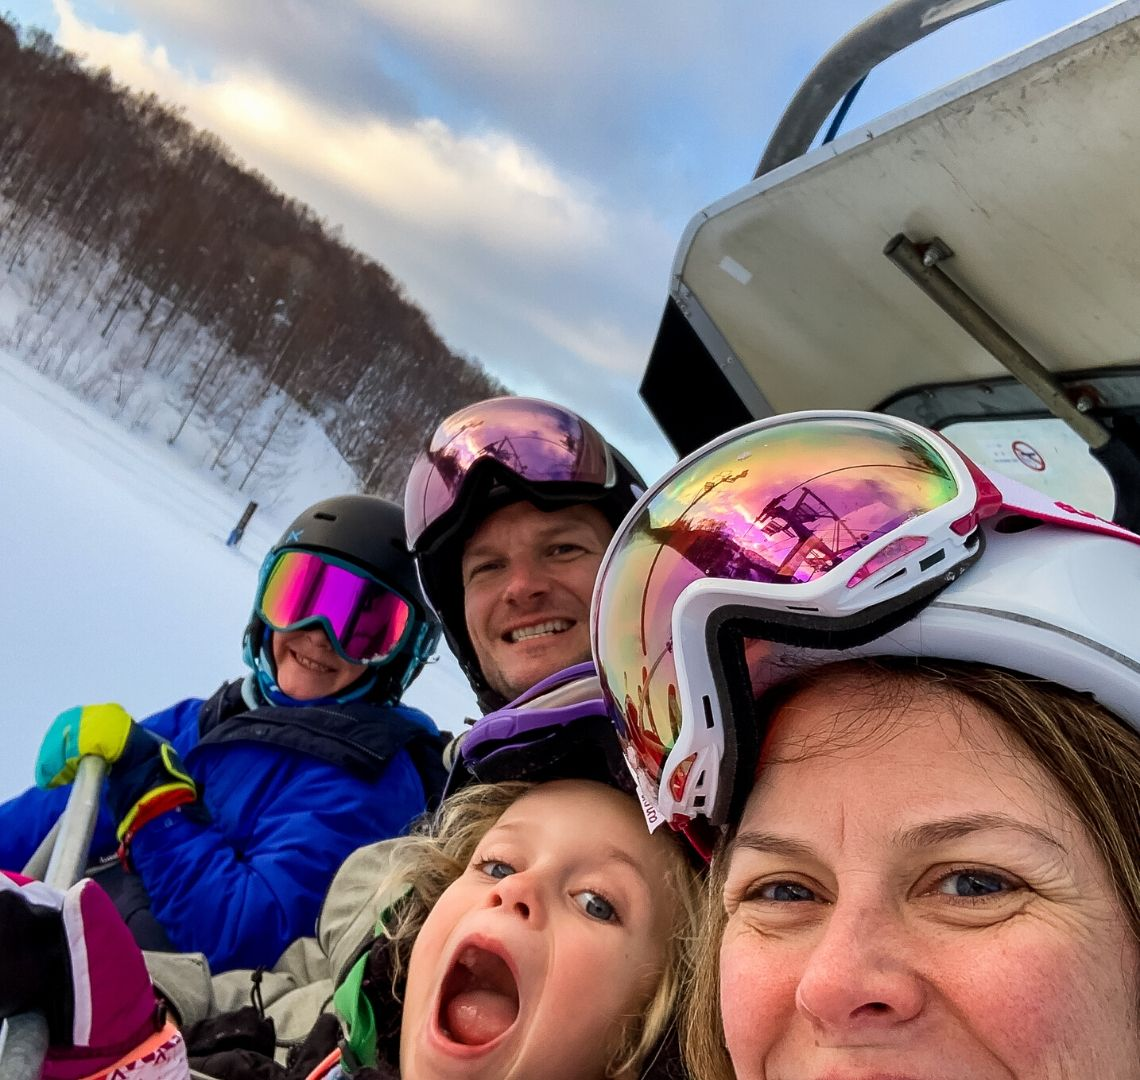 5 reasons to go family skiing in Niseko Wanderlust Family selfie on a ski lift - in order: me with my pink goggles wonky on my helmet, Thing 2 with pulling a funny face, Mr Wanderlust also with his goggles on his helmet and Thing 1 with rainbow goggles on, a black helmet and a bright blue jacket